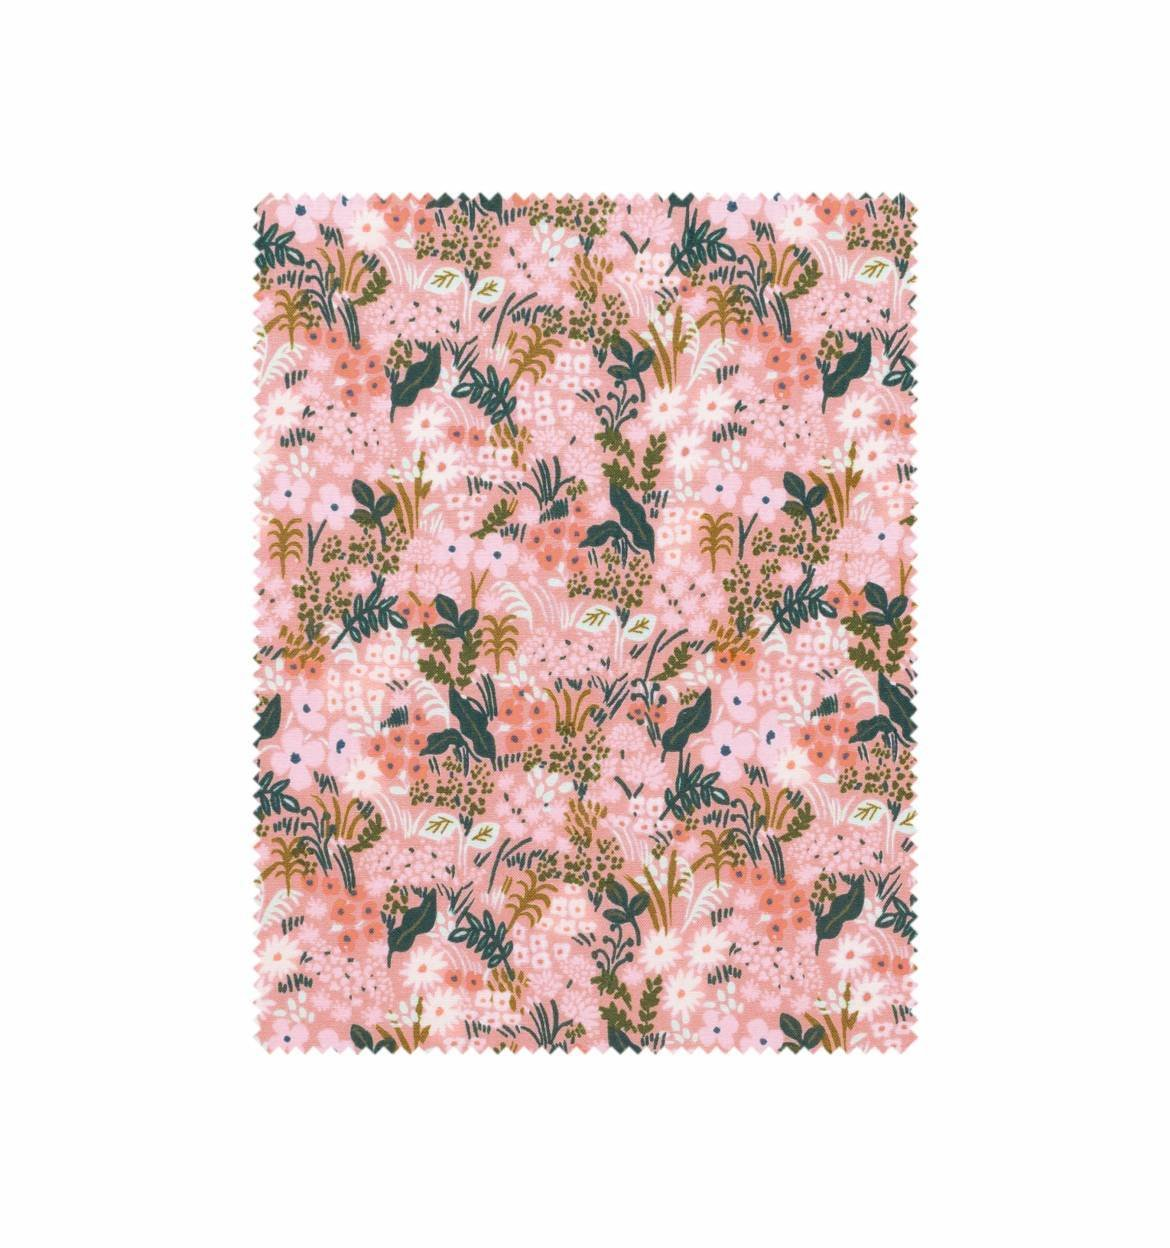 Meadow - English Garden - Rifle Paper Co. - Cotton + Steel